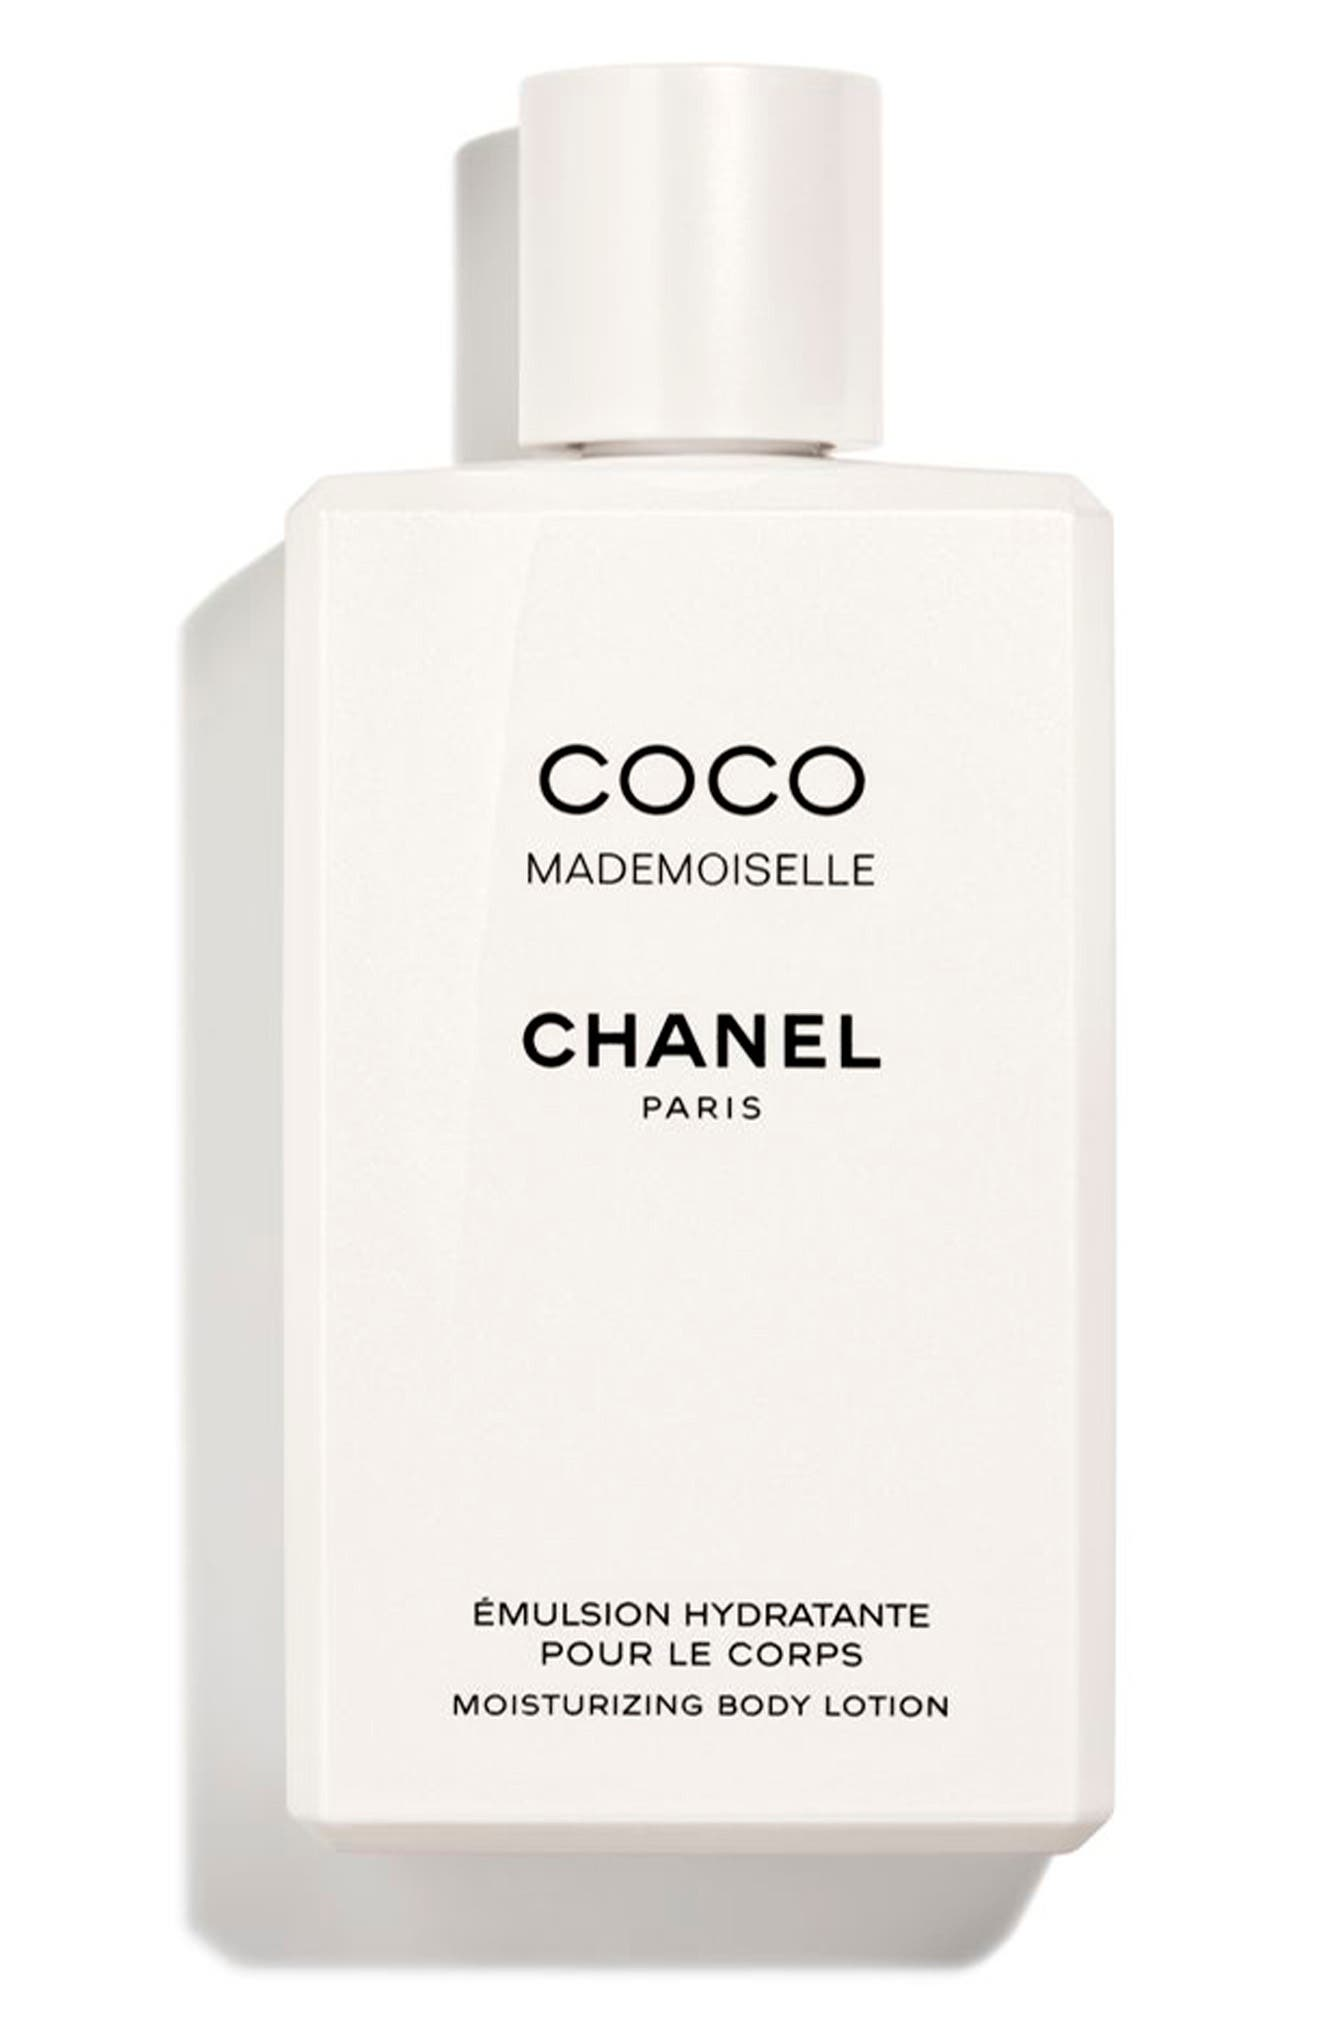 CHANEL COCO MADEMOISELLE  Moisturizing Body Lotion | Nordstrom